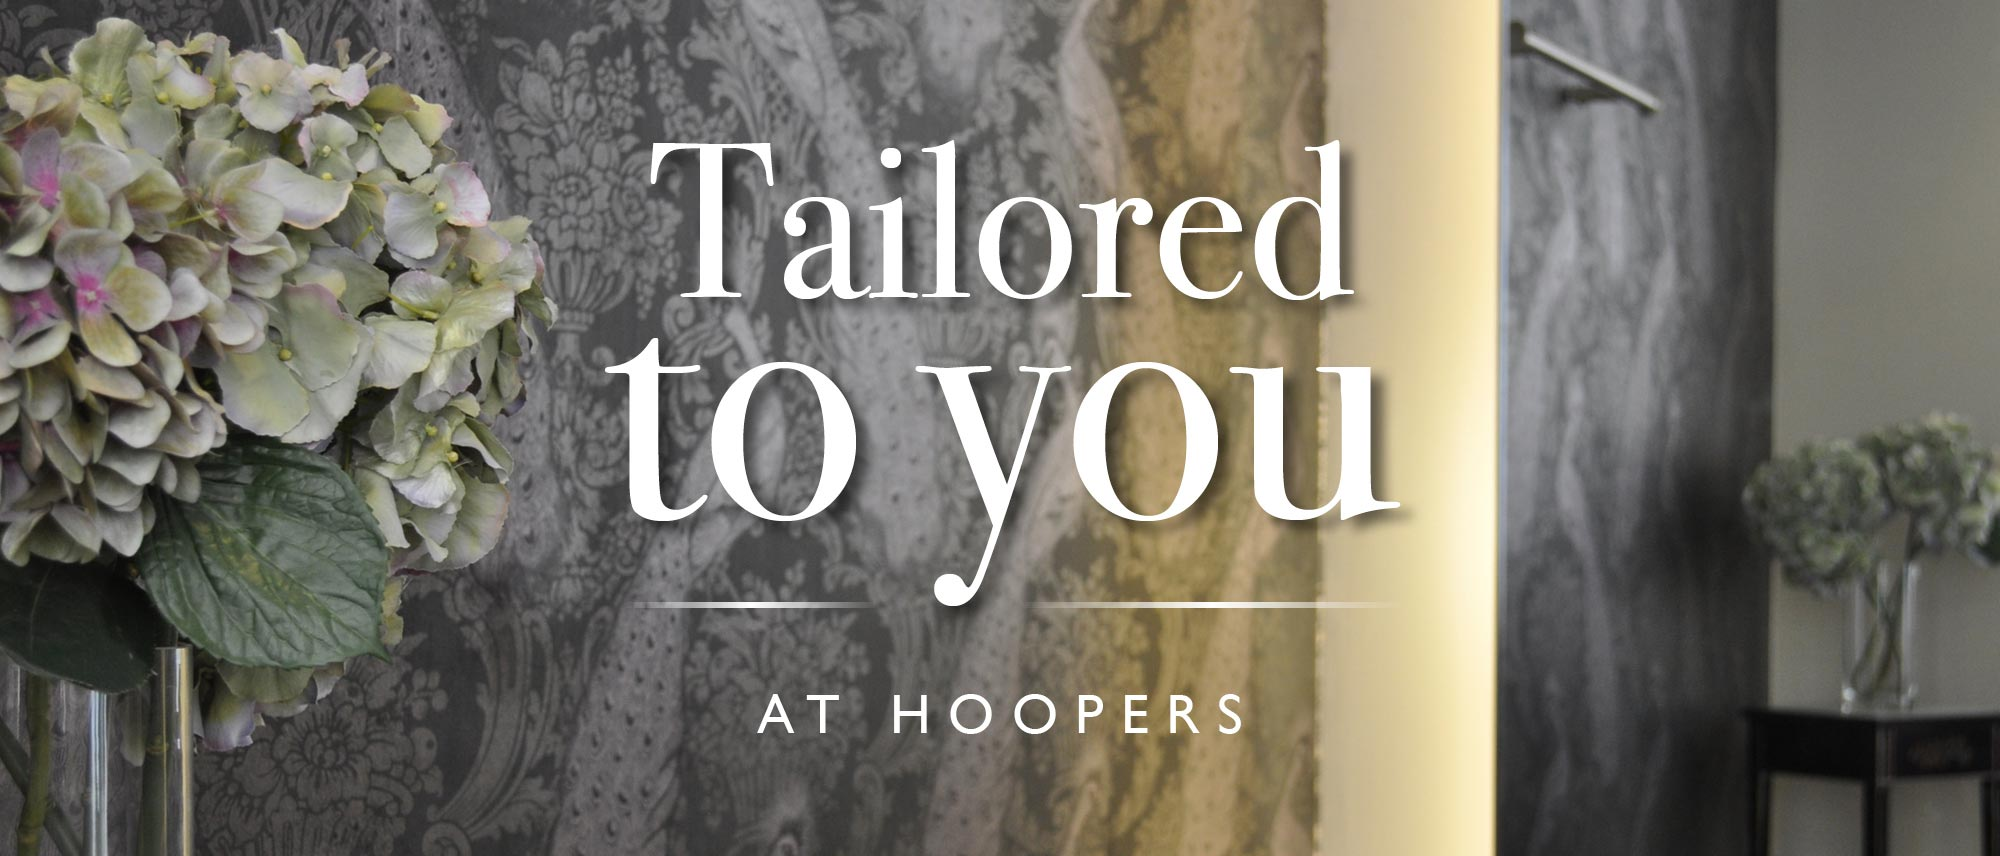 Fashion tailored to you at Hoopers